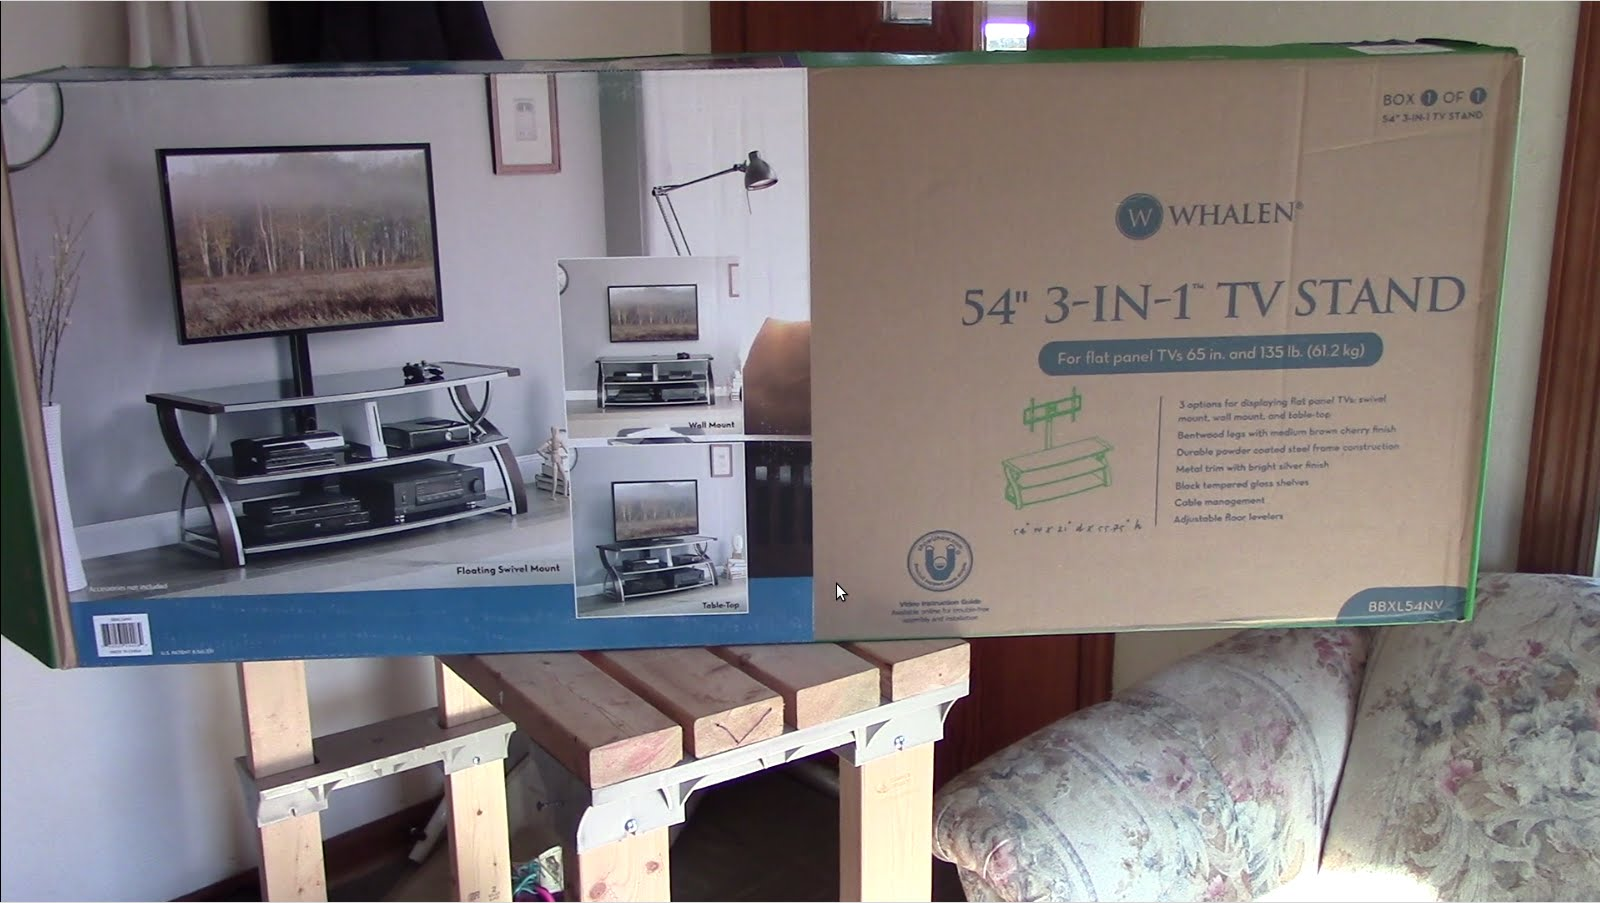 Whalen 3 In 1 Tv Stand Review